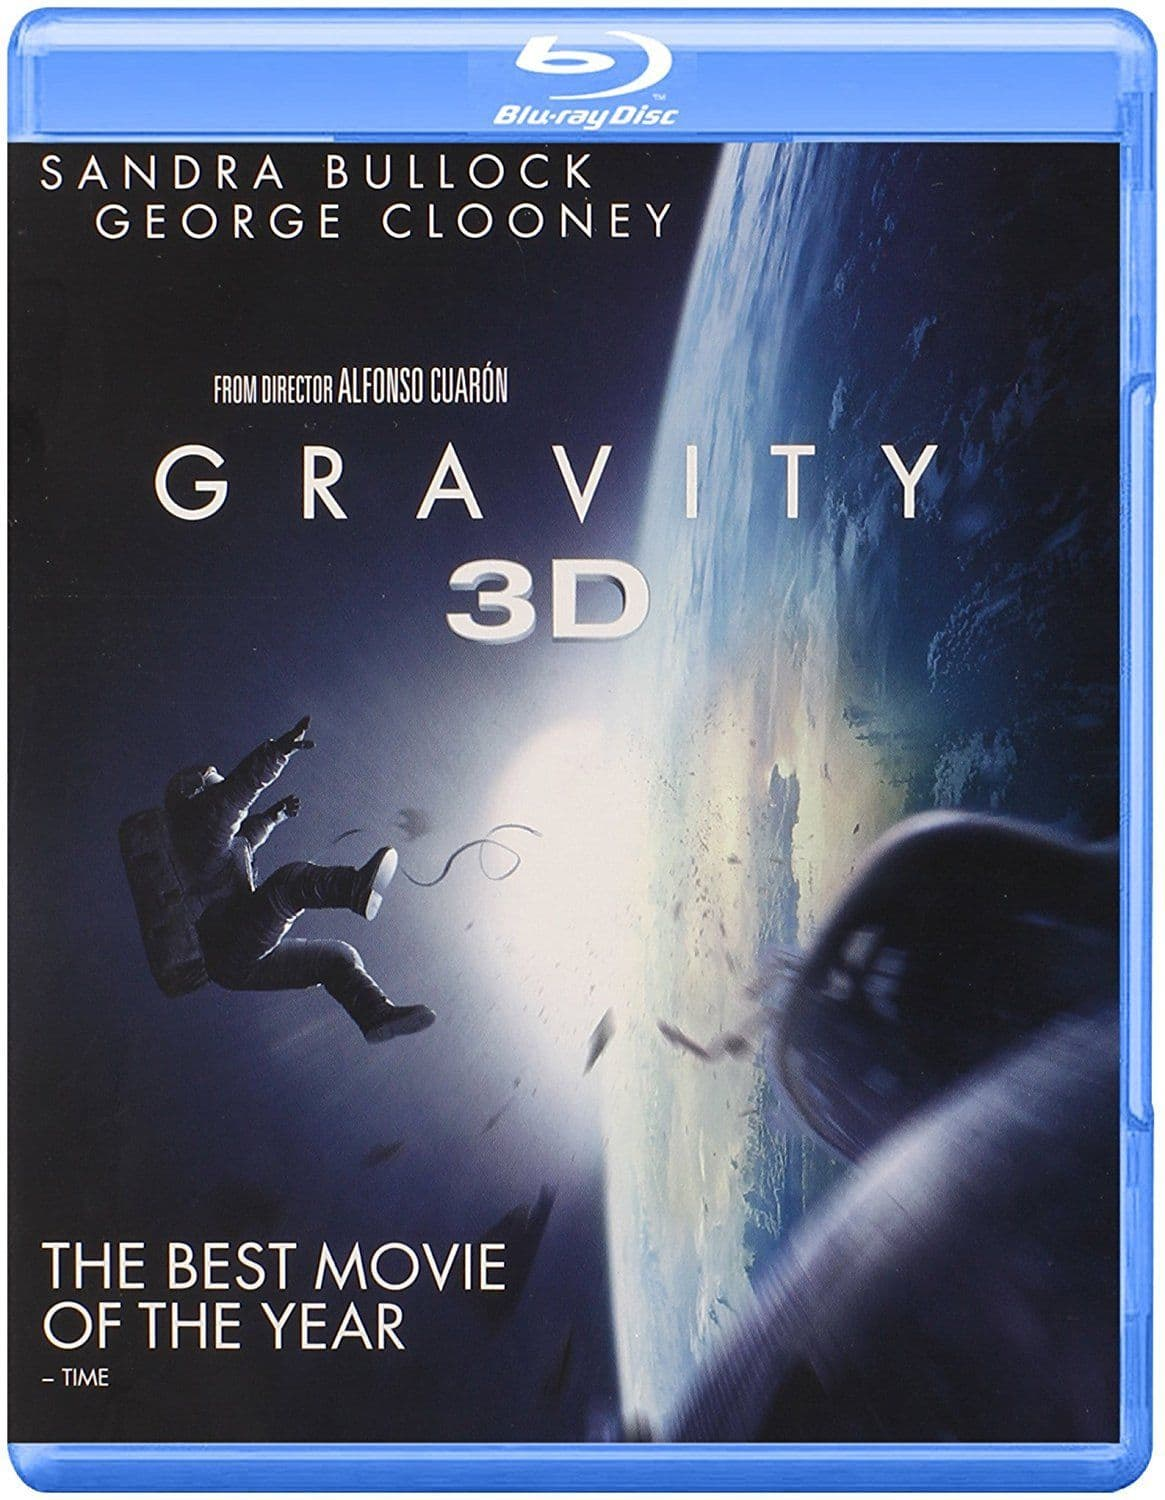 Gravity Blu Ray 3D limited quantity free shipping $13.96